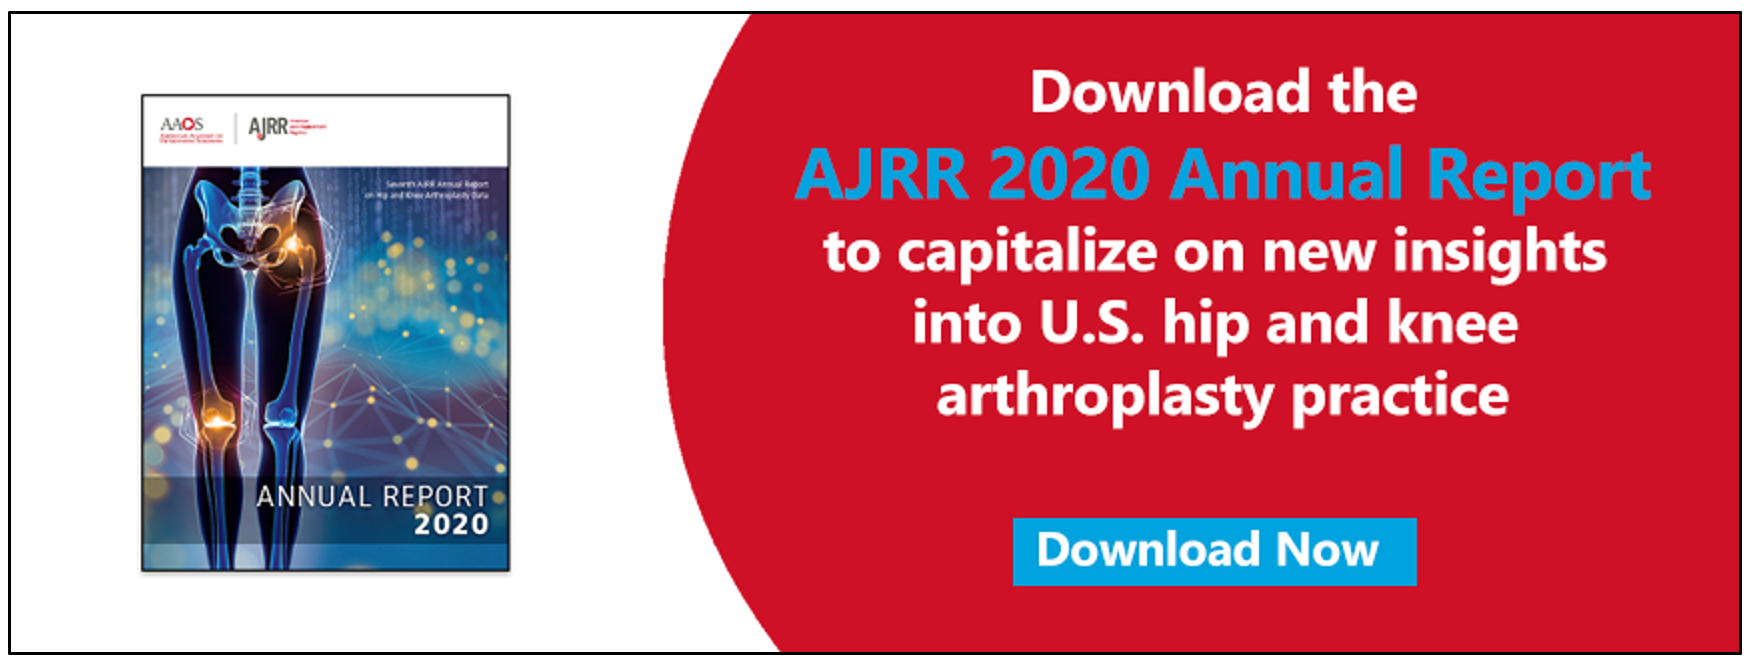 Download the AJRR 2020 Annual Report Now